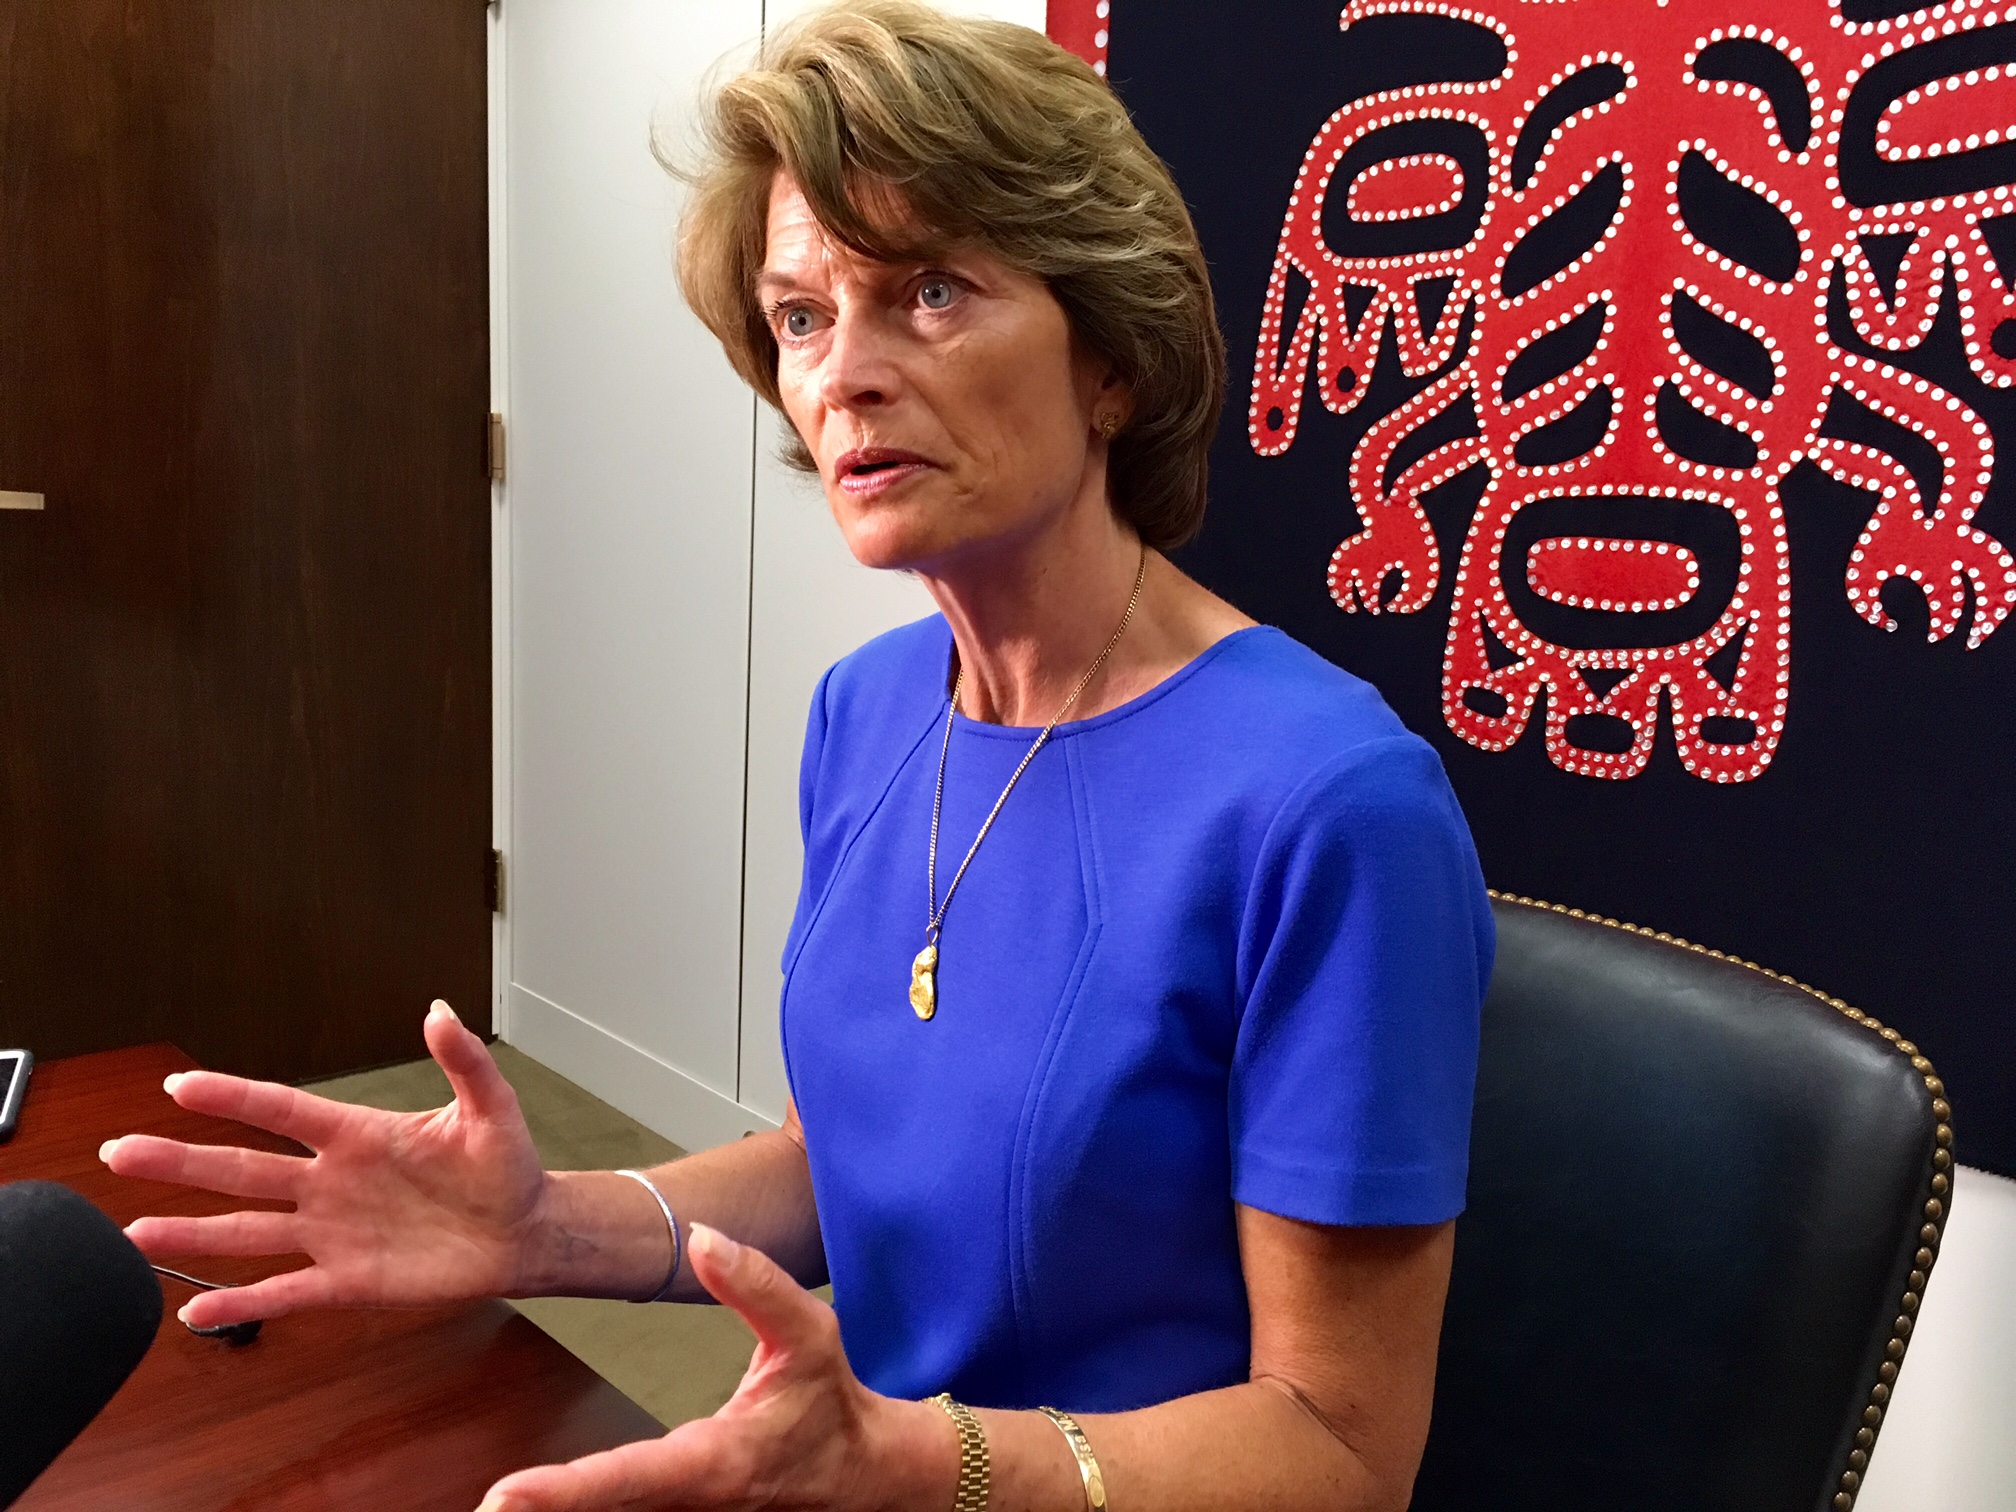 Murkowski can't support repeal of ACA without replacement